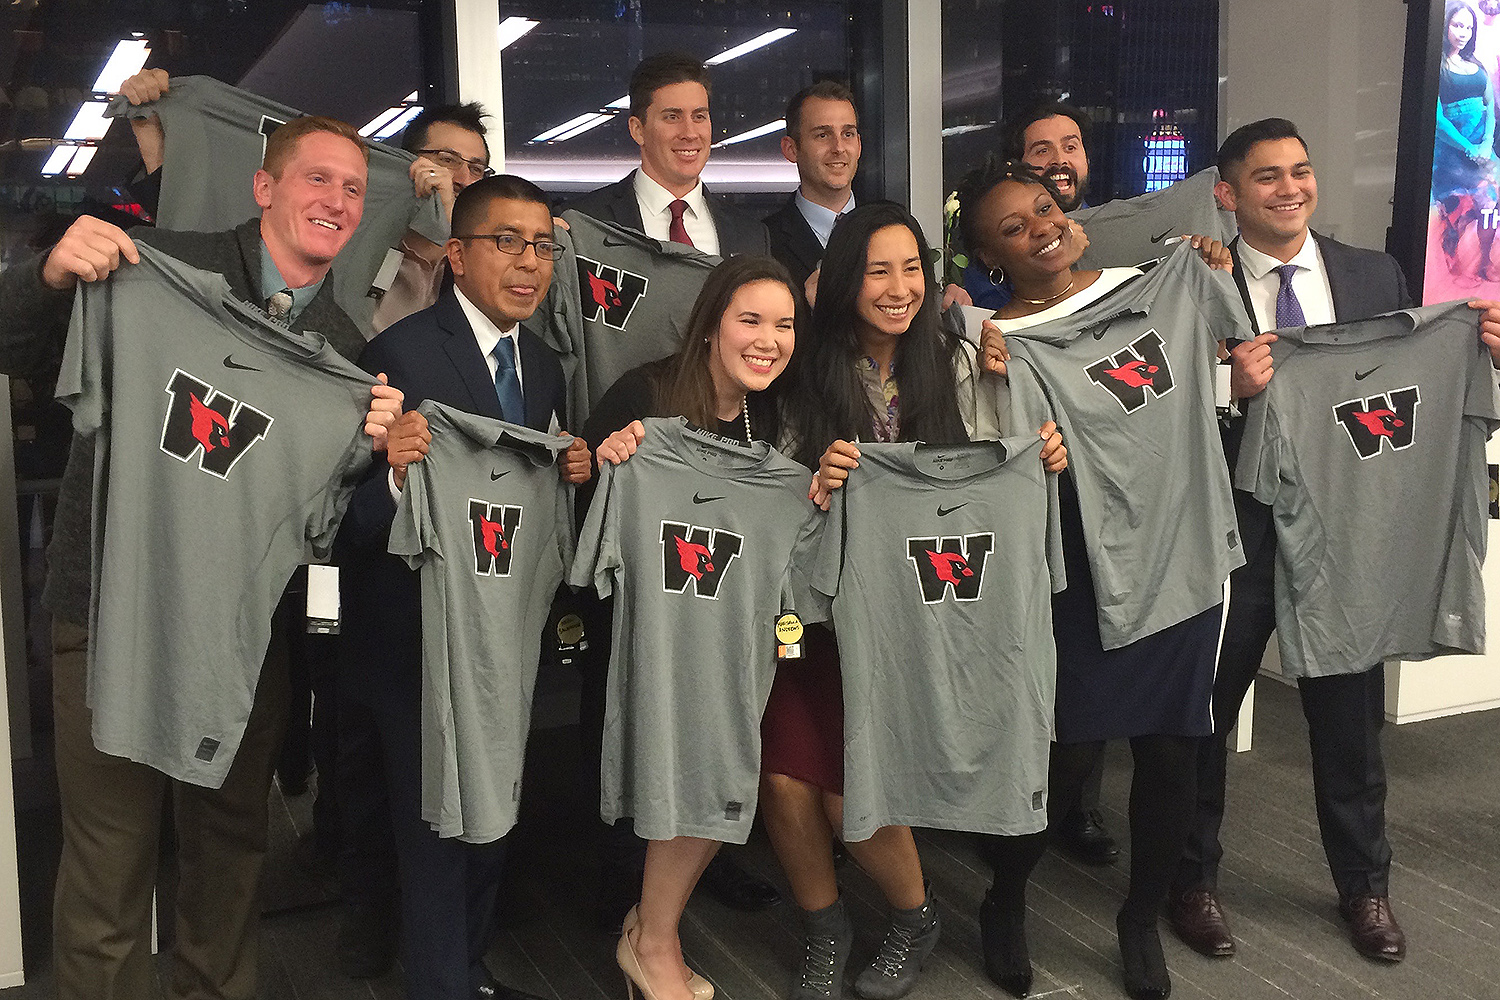 Wesleyan's Posse Foundation Veteran Scholars Program offers a four-year, full-tuition leadership scholarship to military veterans.